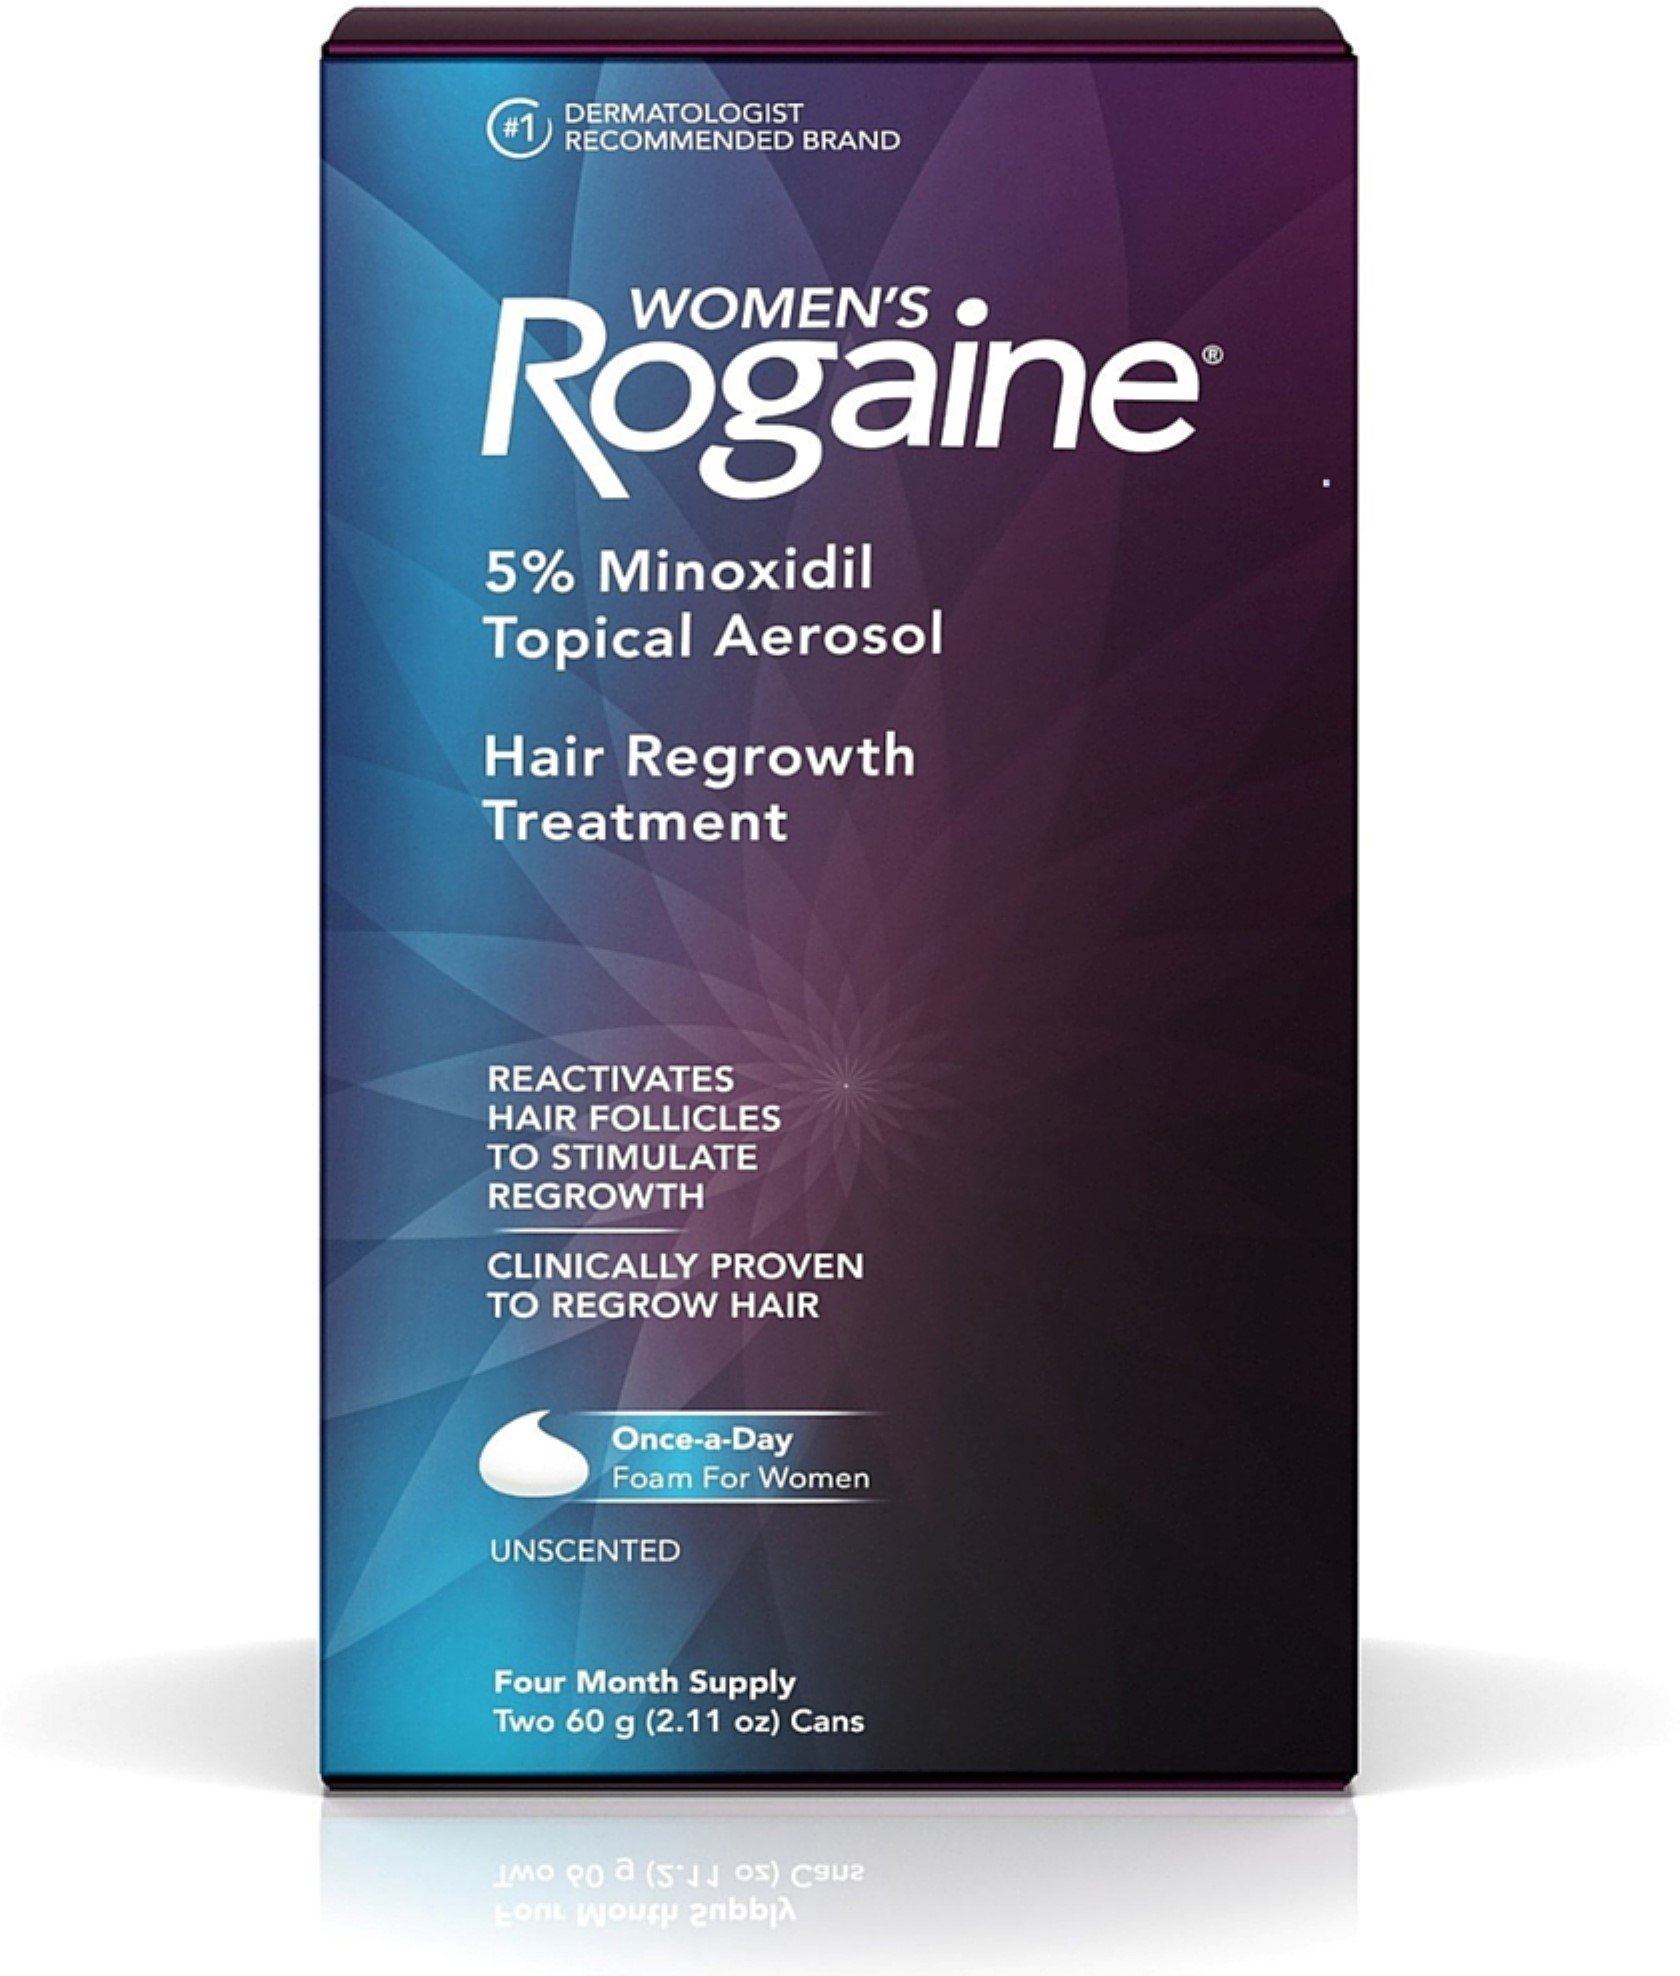 Rogaine Women's Hair Regrowth Treatment, 4 Month Supply, 2.11 oz cans, 2 ea (Pack of 10)